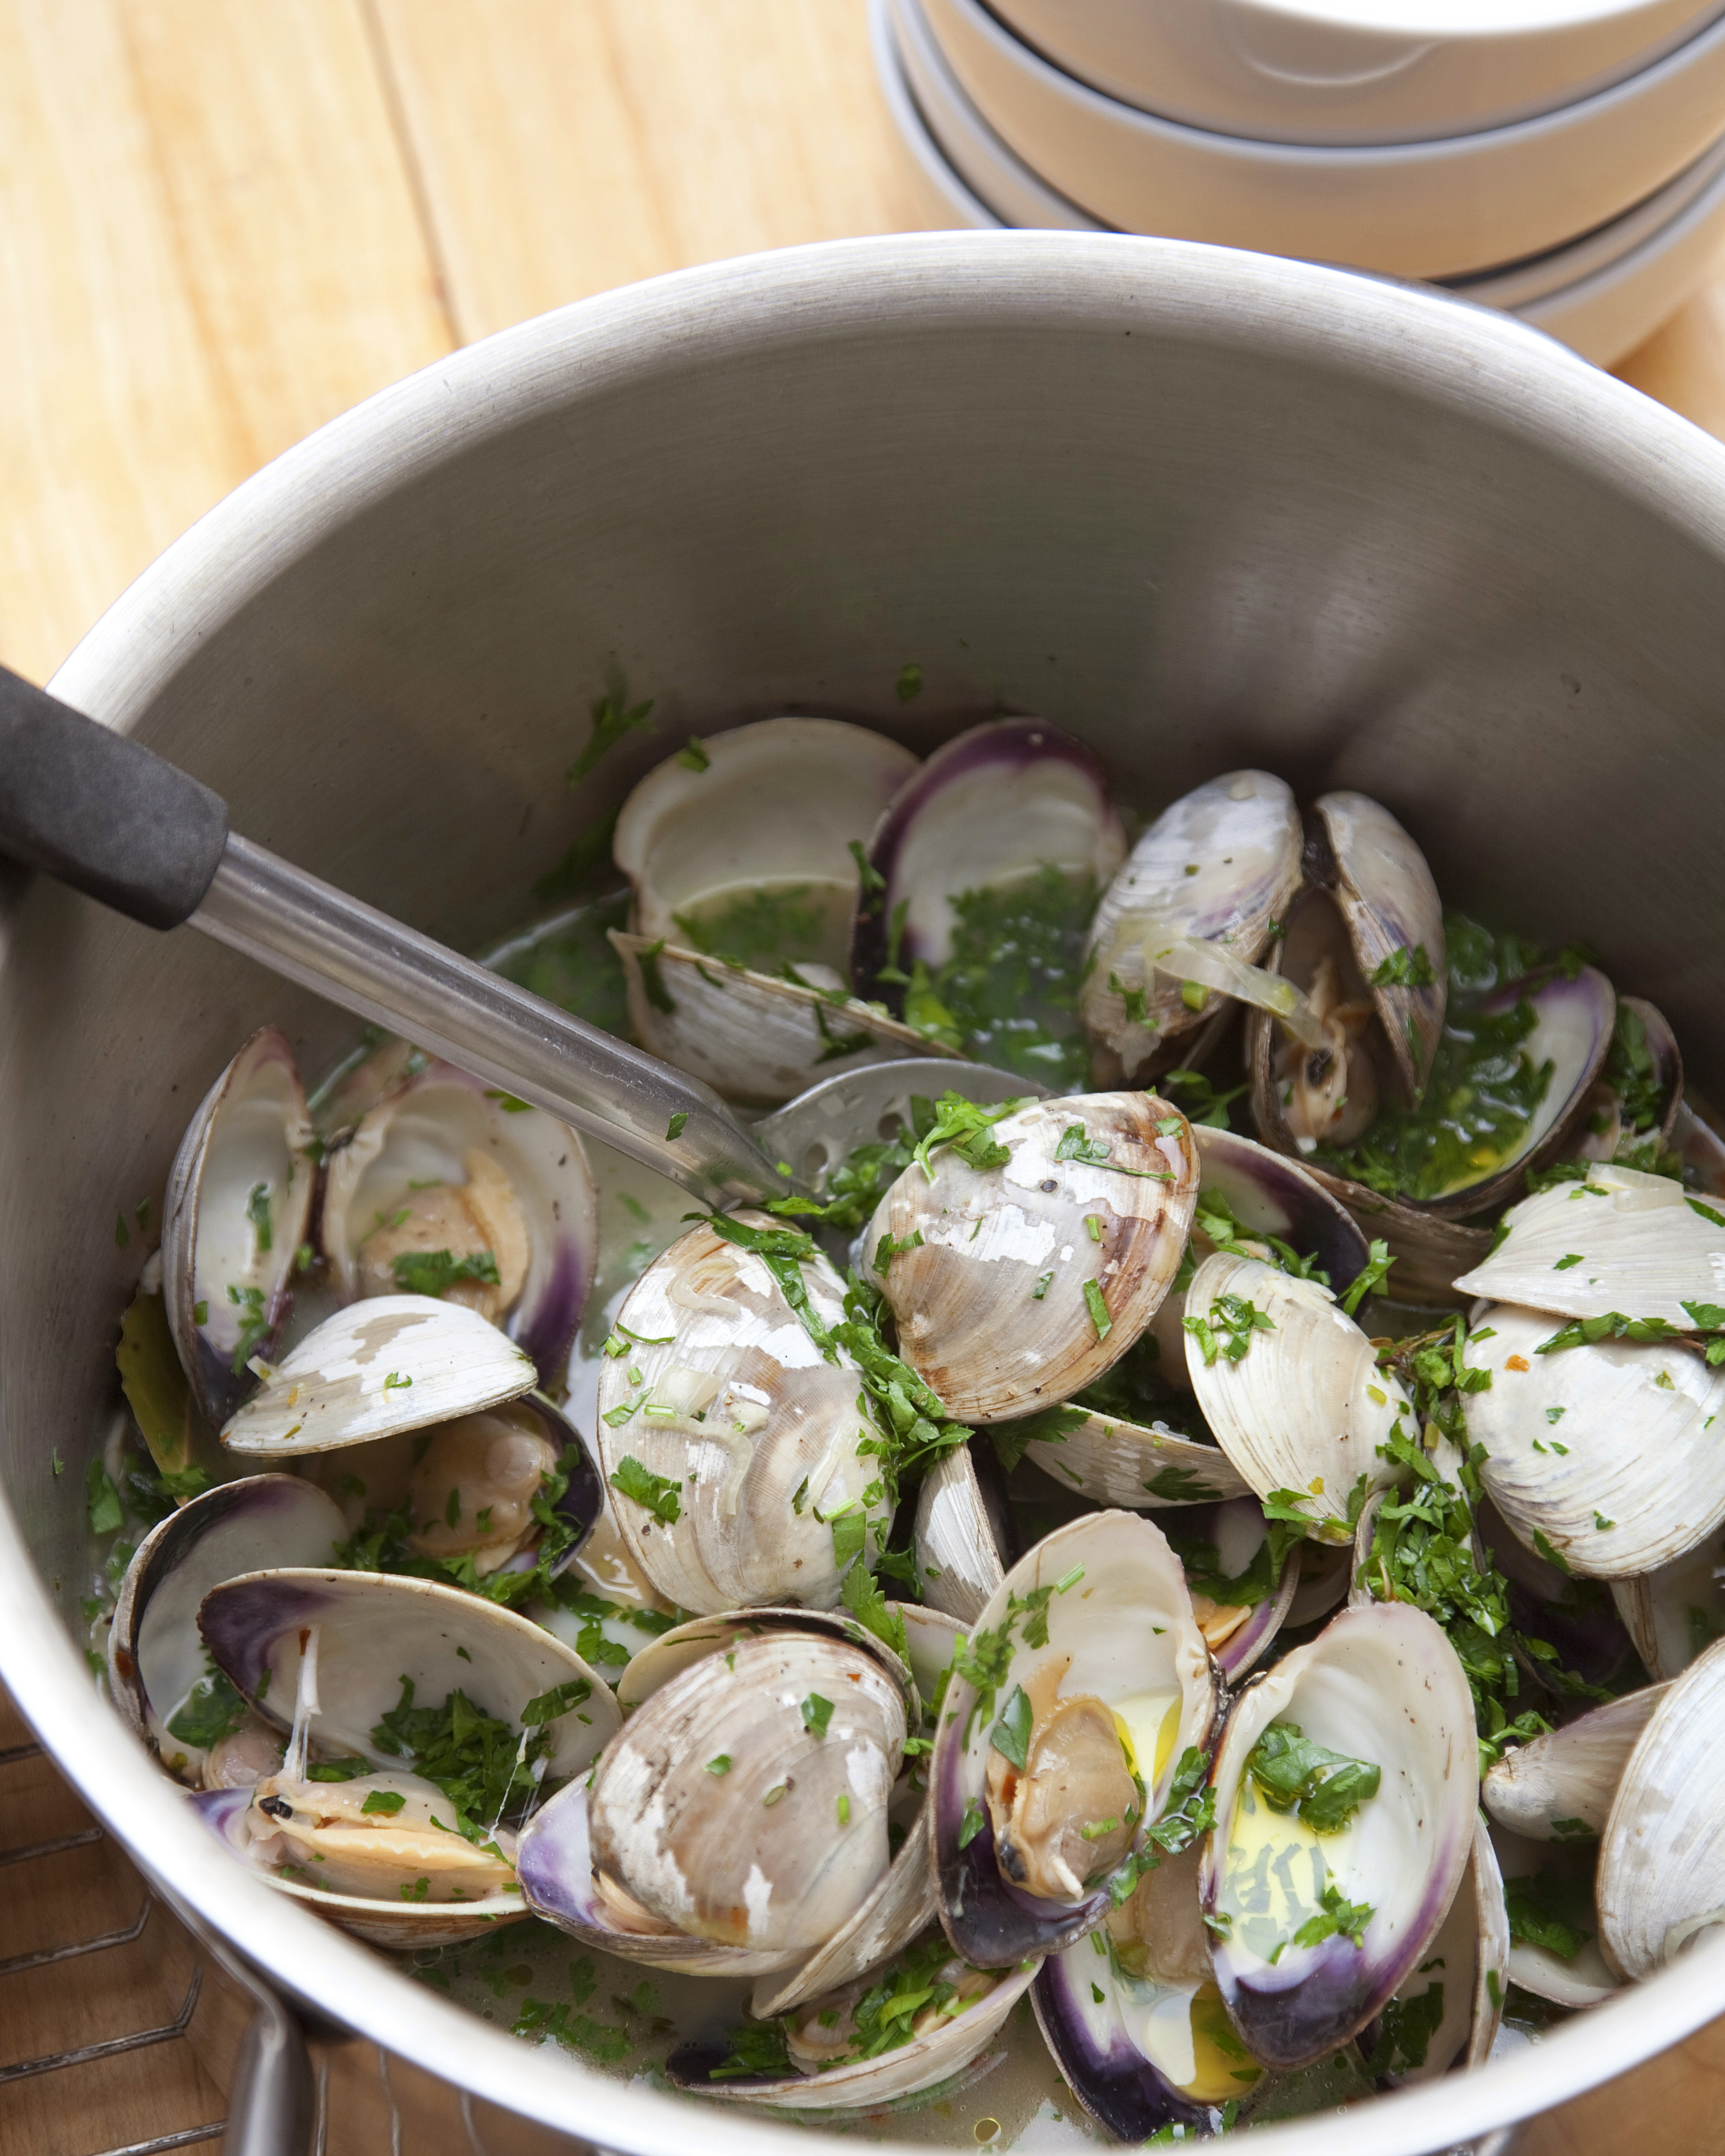 New England clams